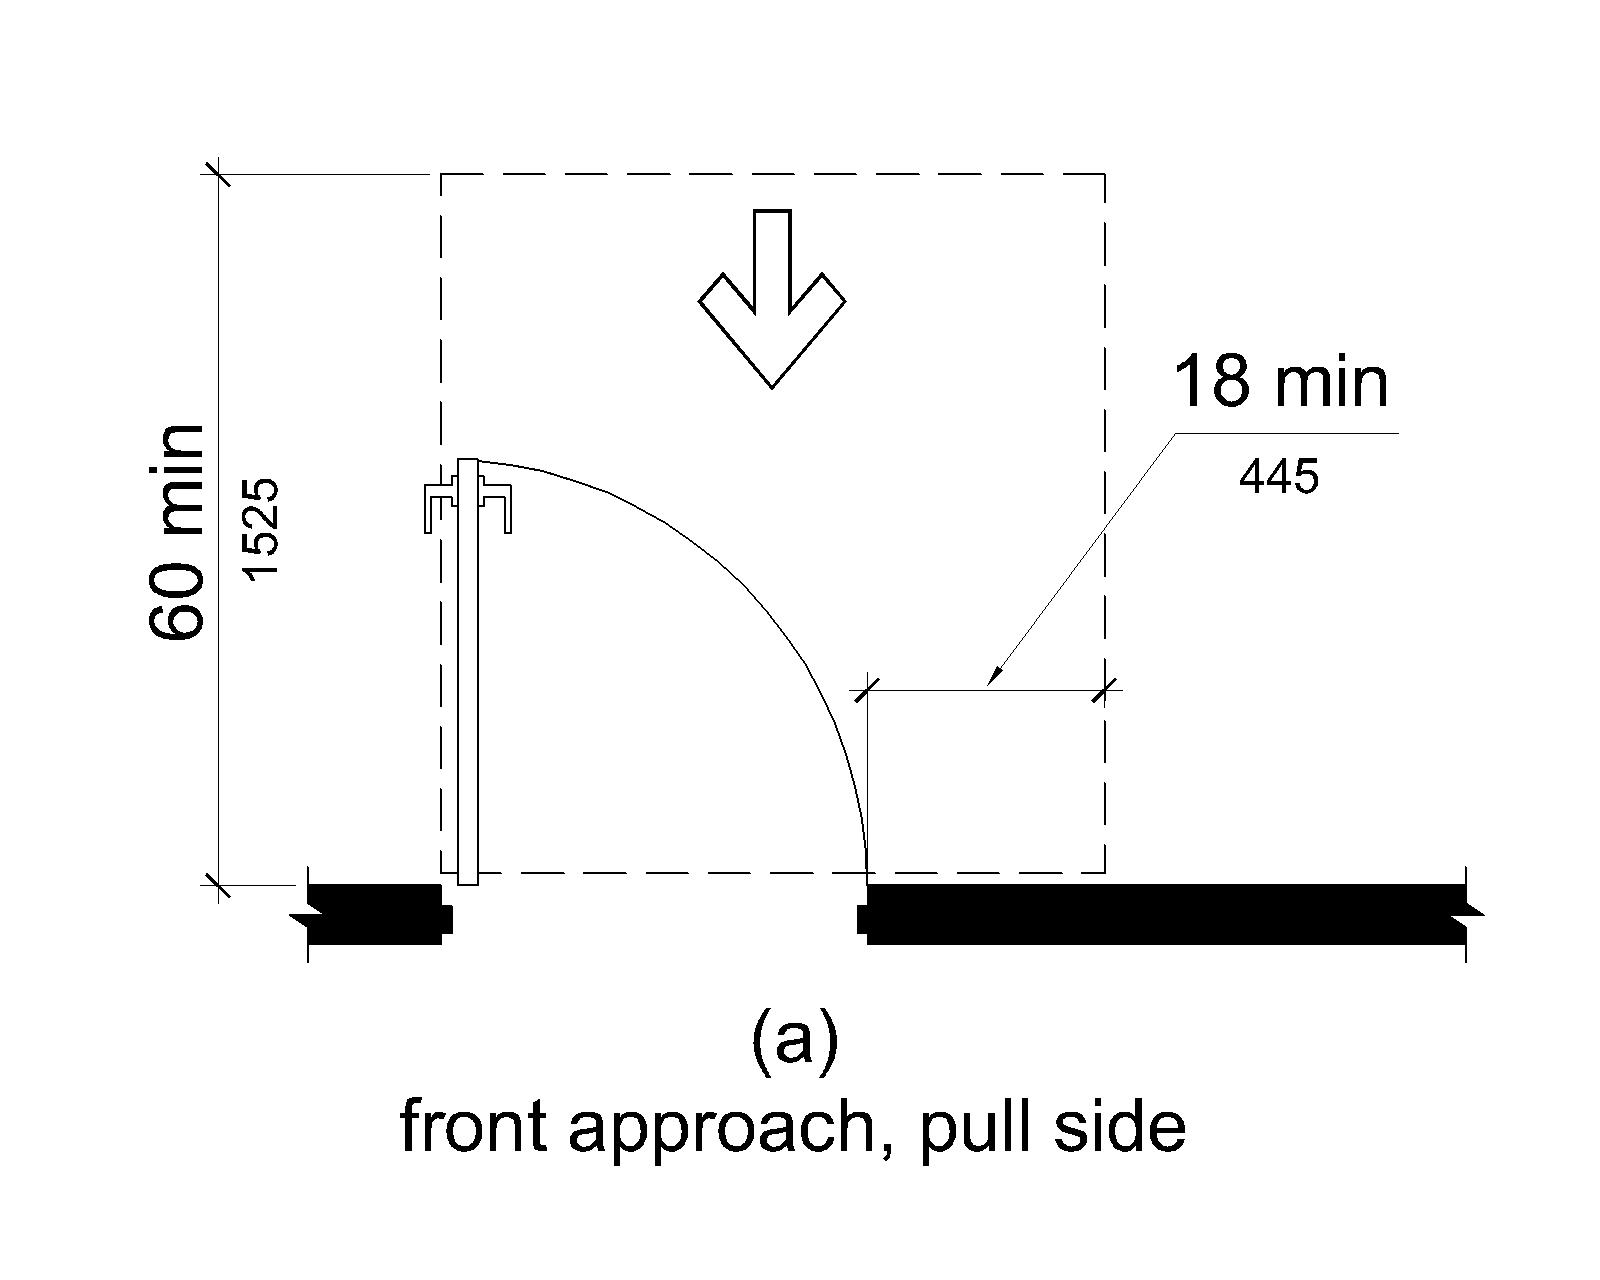 (a) Maneuvering space on the pull side extends 18 inches (455 mm) minimum beyond the latch side of the door and 60 inches (1525 mm) minimum perpendicular to the doorway.